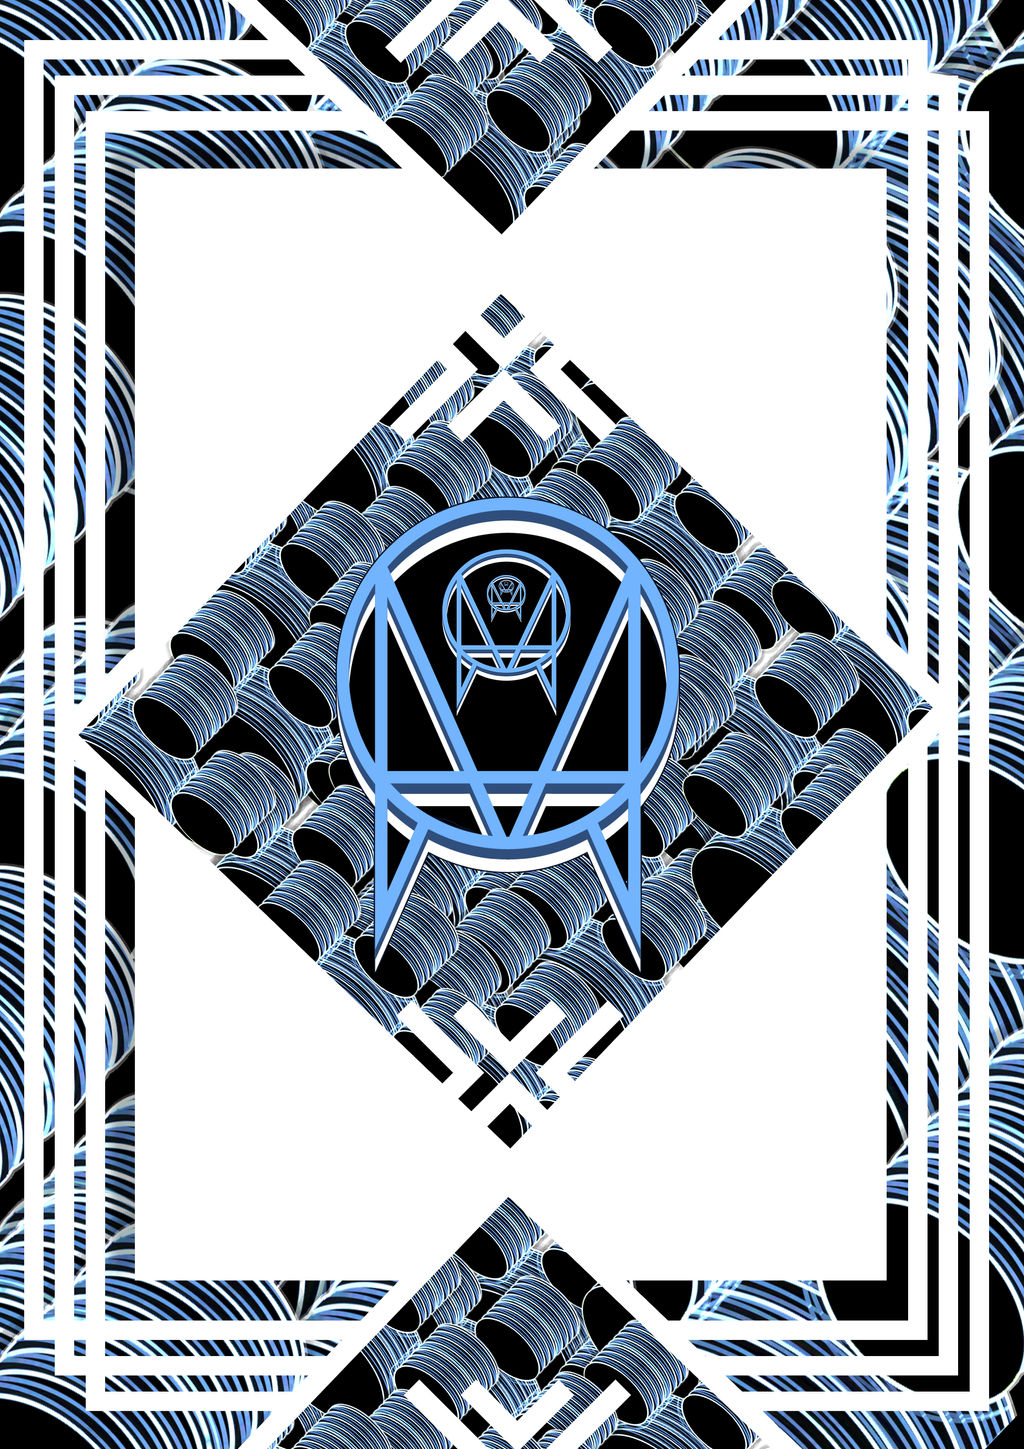 Owsla-poster by AstraConcepts on DeviantArt